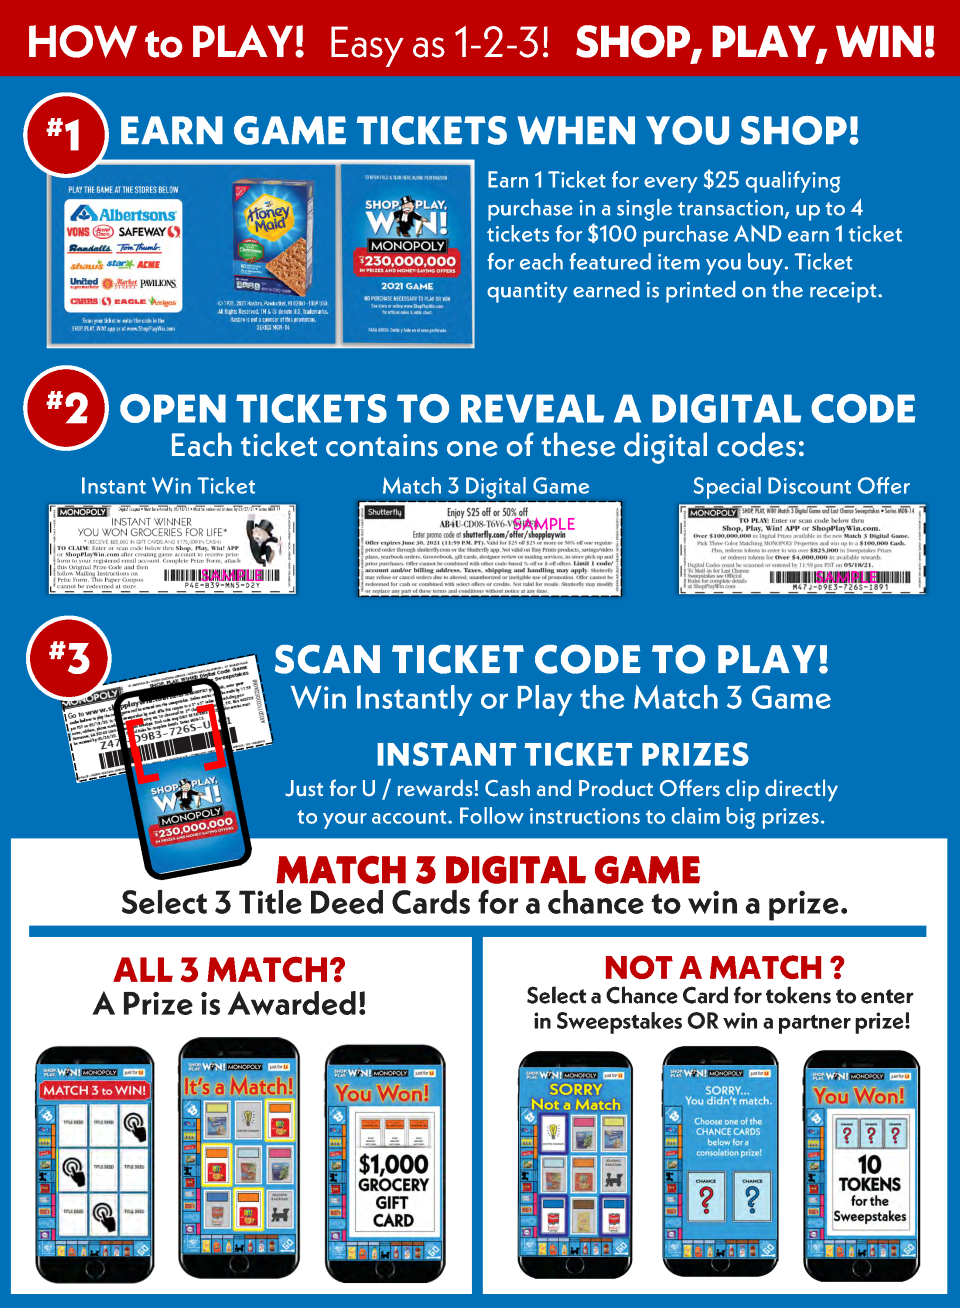 How to play #GoShopPlayWin Monopoly Game at Albertson's